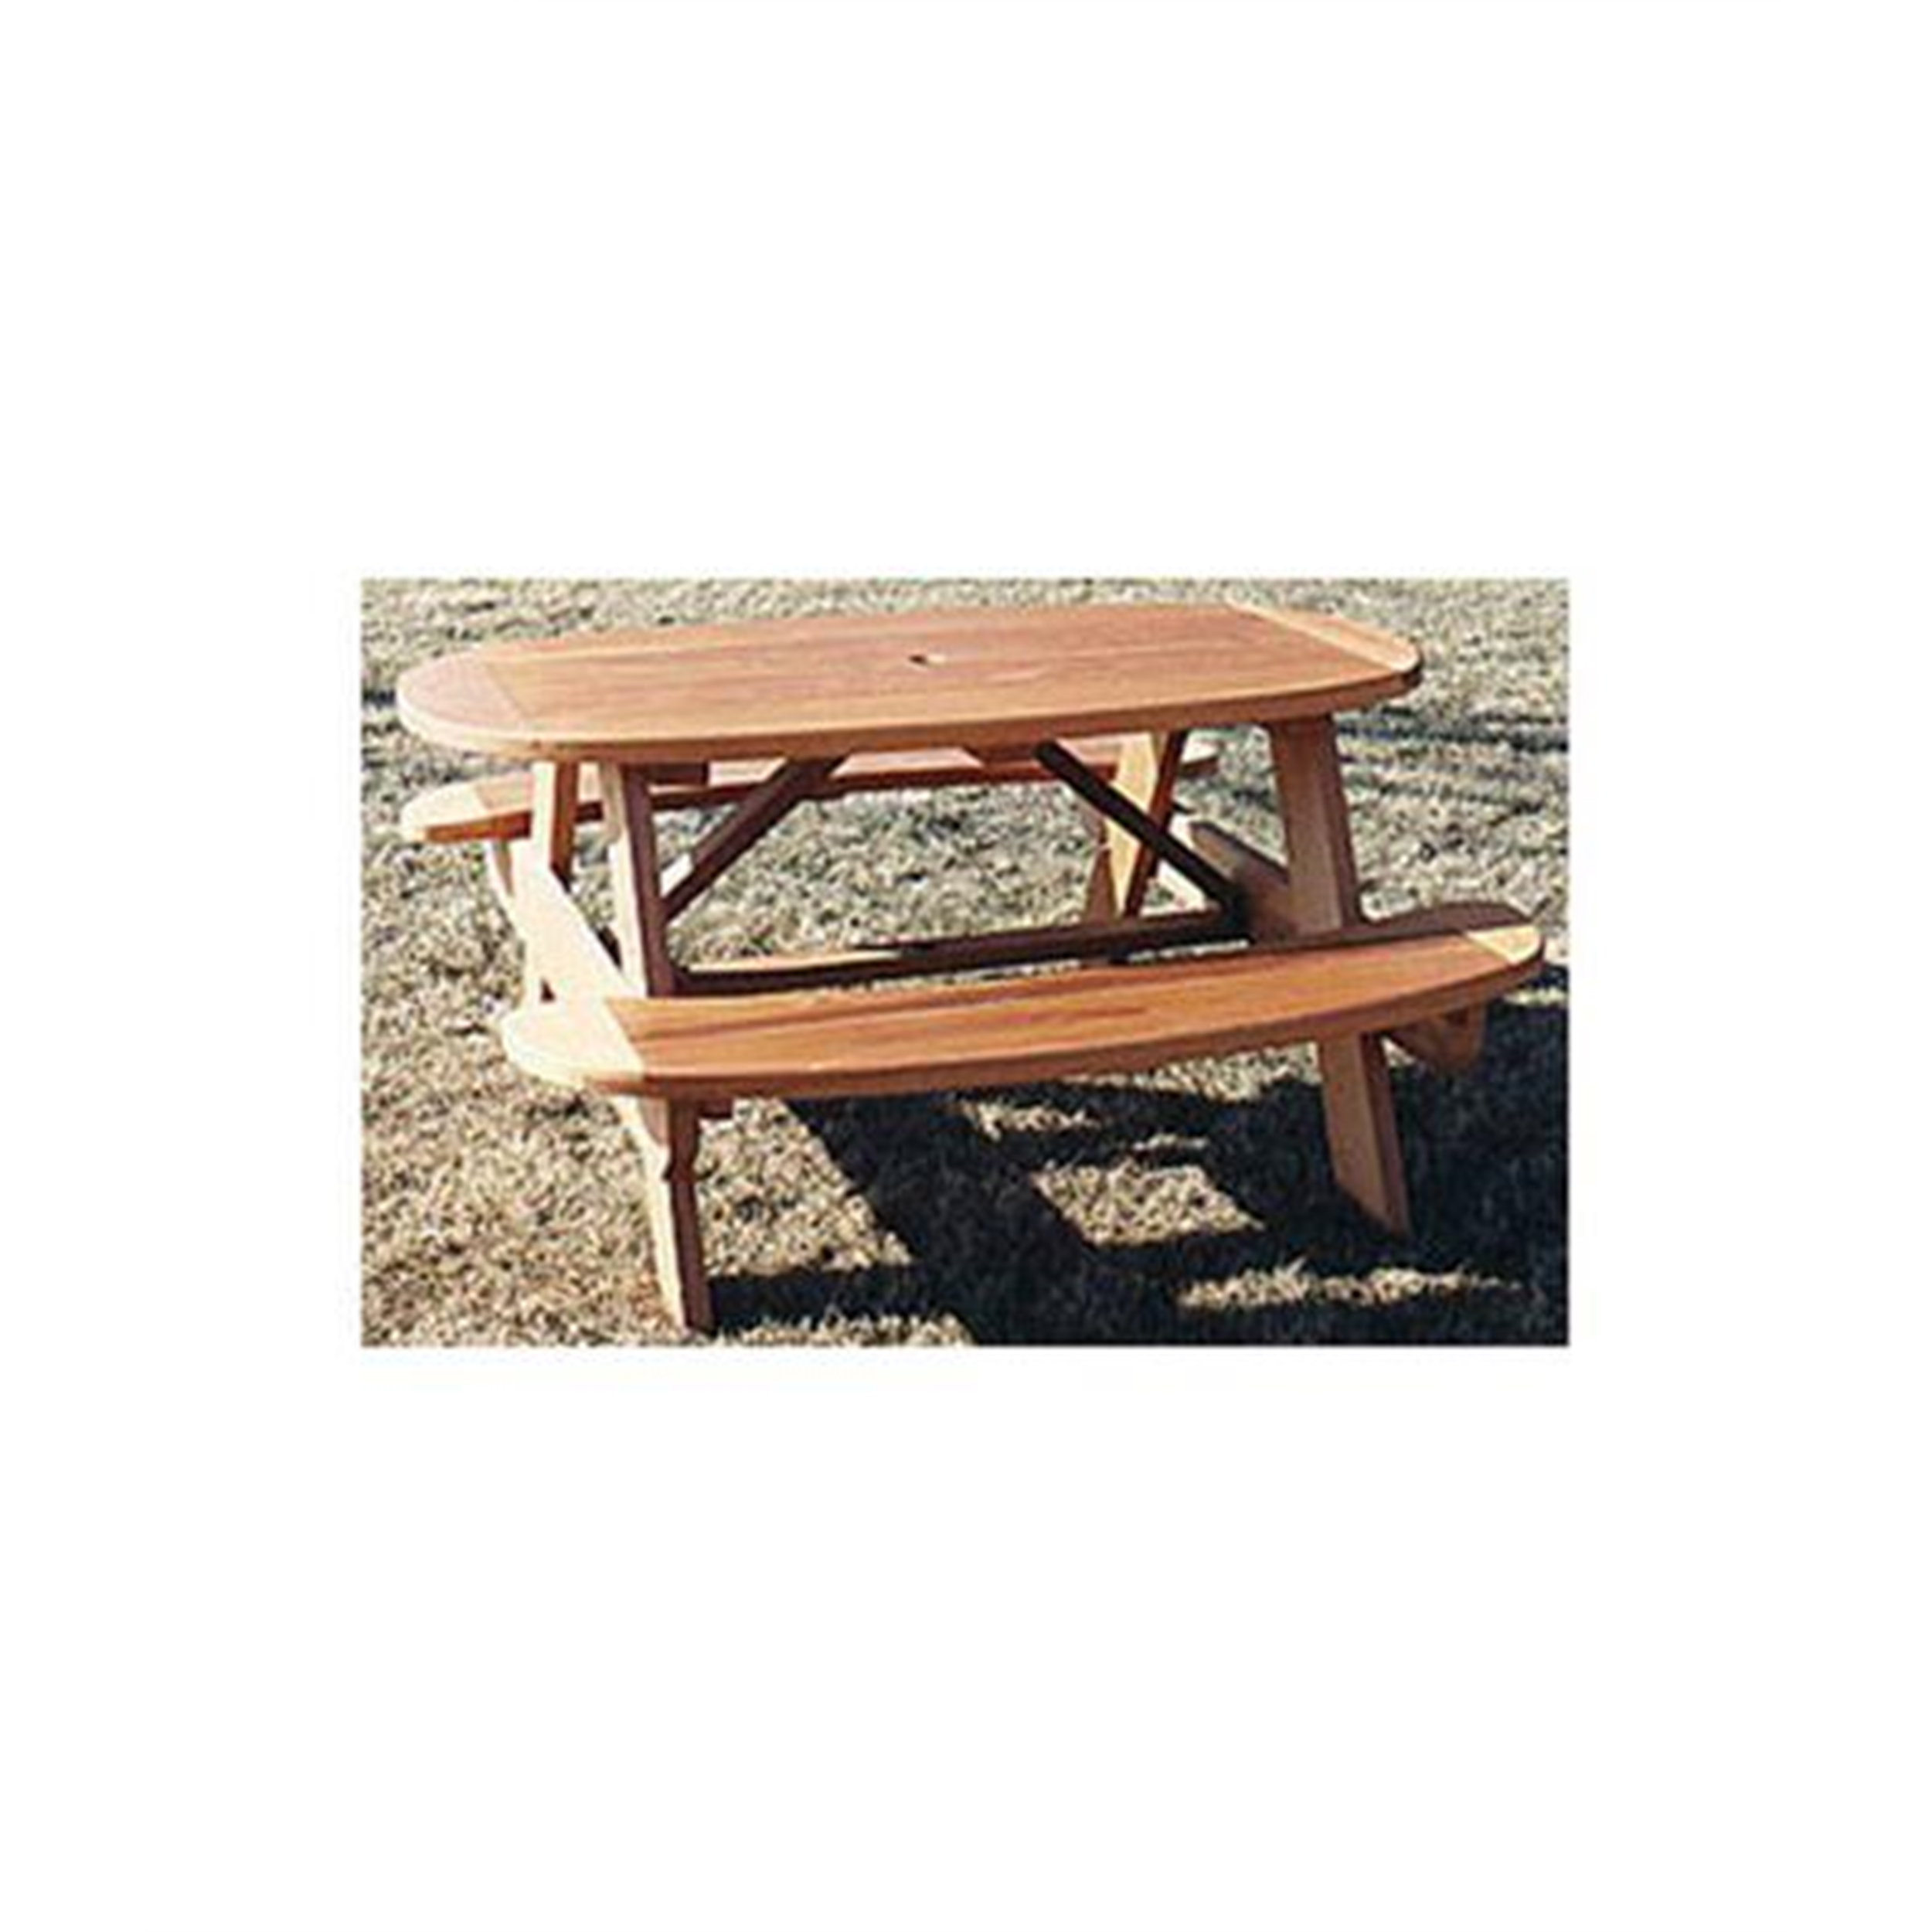 Woodworking Project Paper Plan to Build Oval Picnic Table